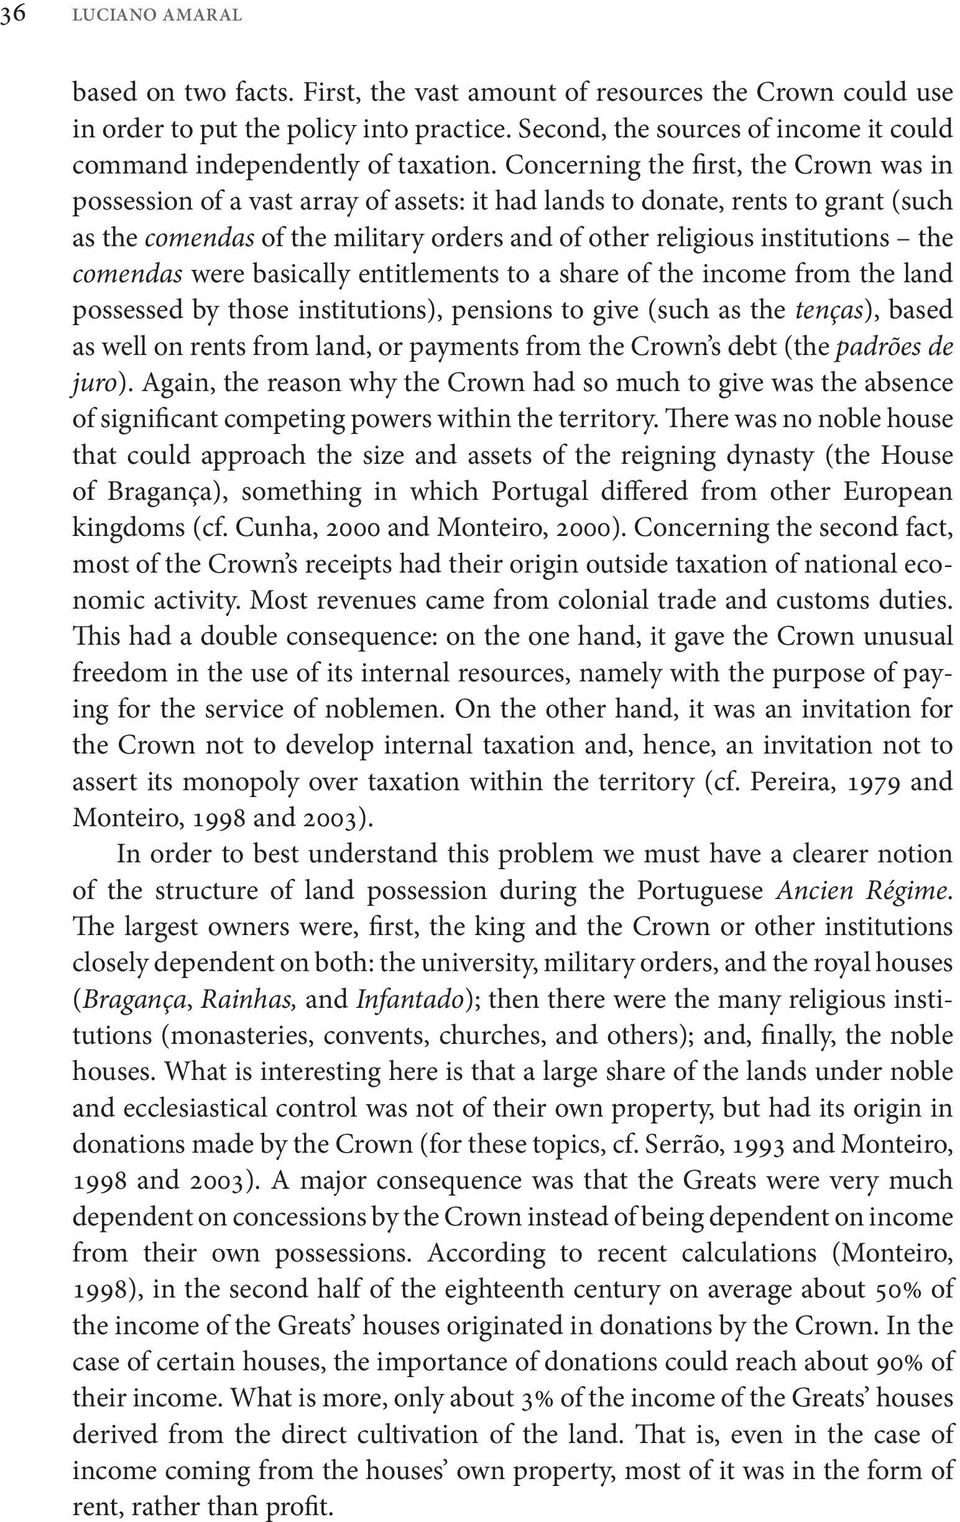 Concerning the first, the Crown was in possession of a vast array of assets: it had lands to donate, rents to grant (such as the comendas of the military orders and of other religious institutions